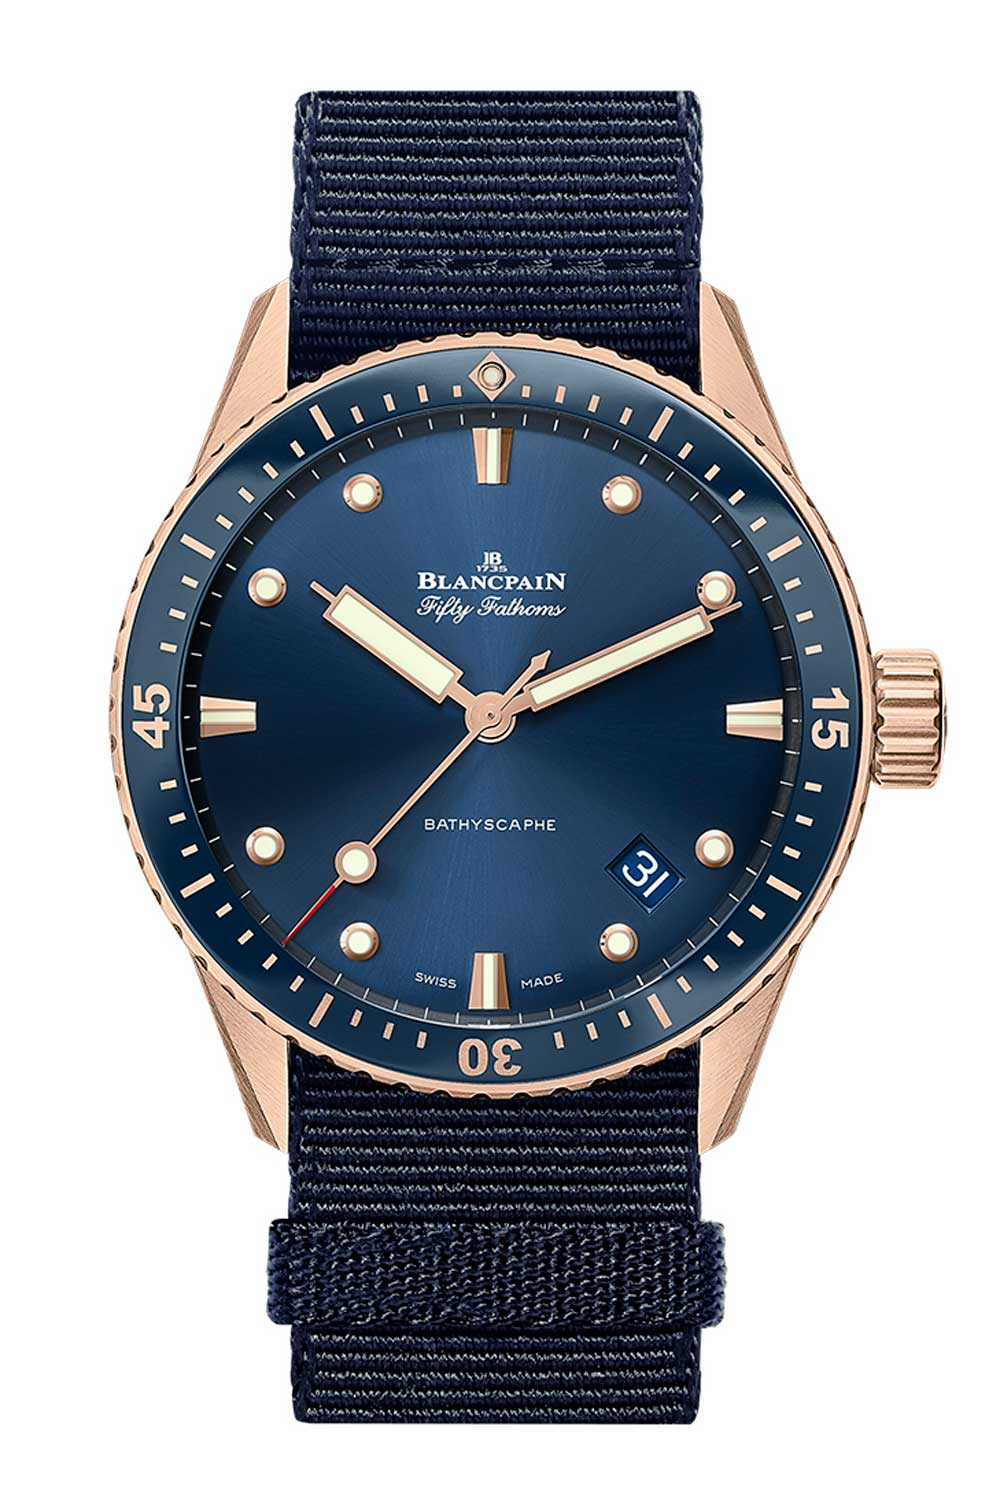 The Fifty Fathoms Bathyscaphe (Blue in Sedna Gold)